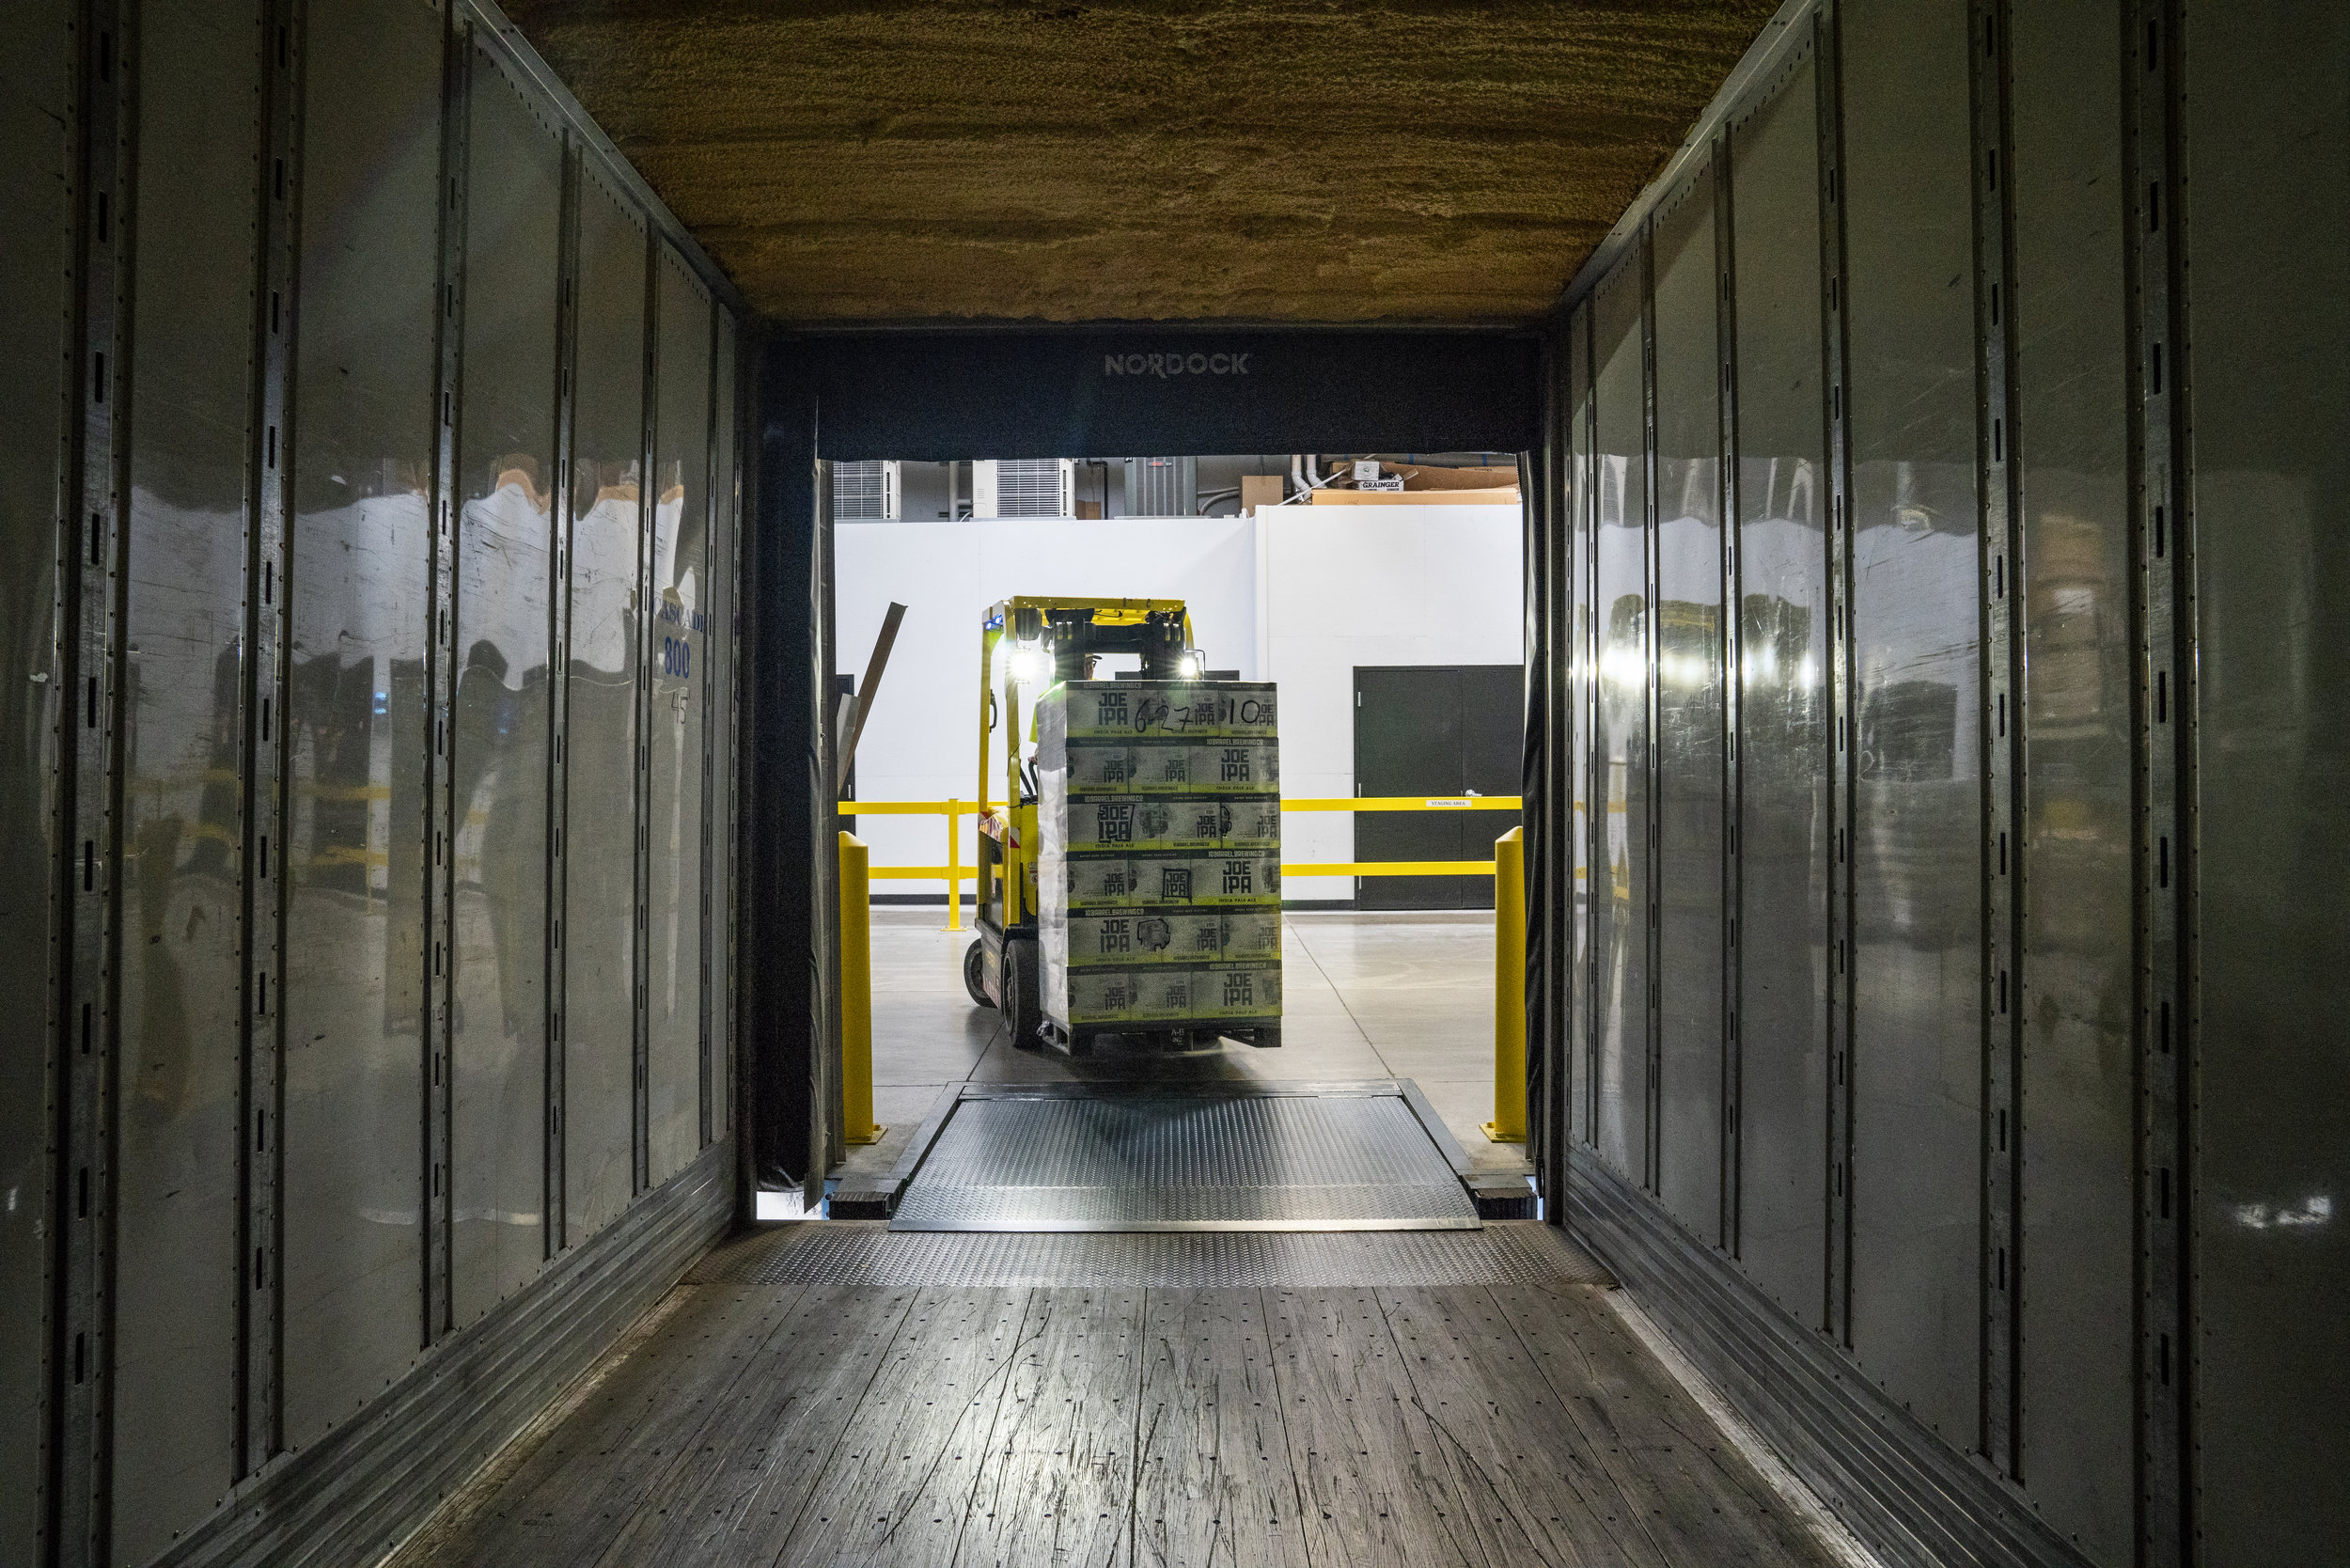 Transporting boxes around a warehouse is one of the most boring jobs a human can do, it is high unlikely that any human doing the job will get pleasure out of it and give it their best, so fortunately, there's a robot with no emotions waiting to replace the human